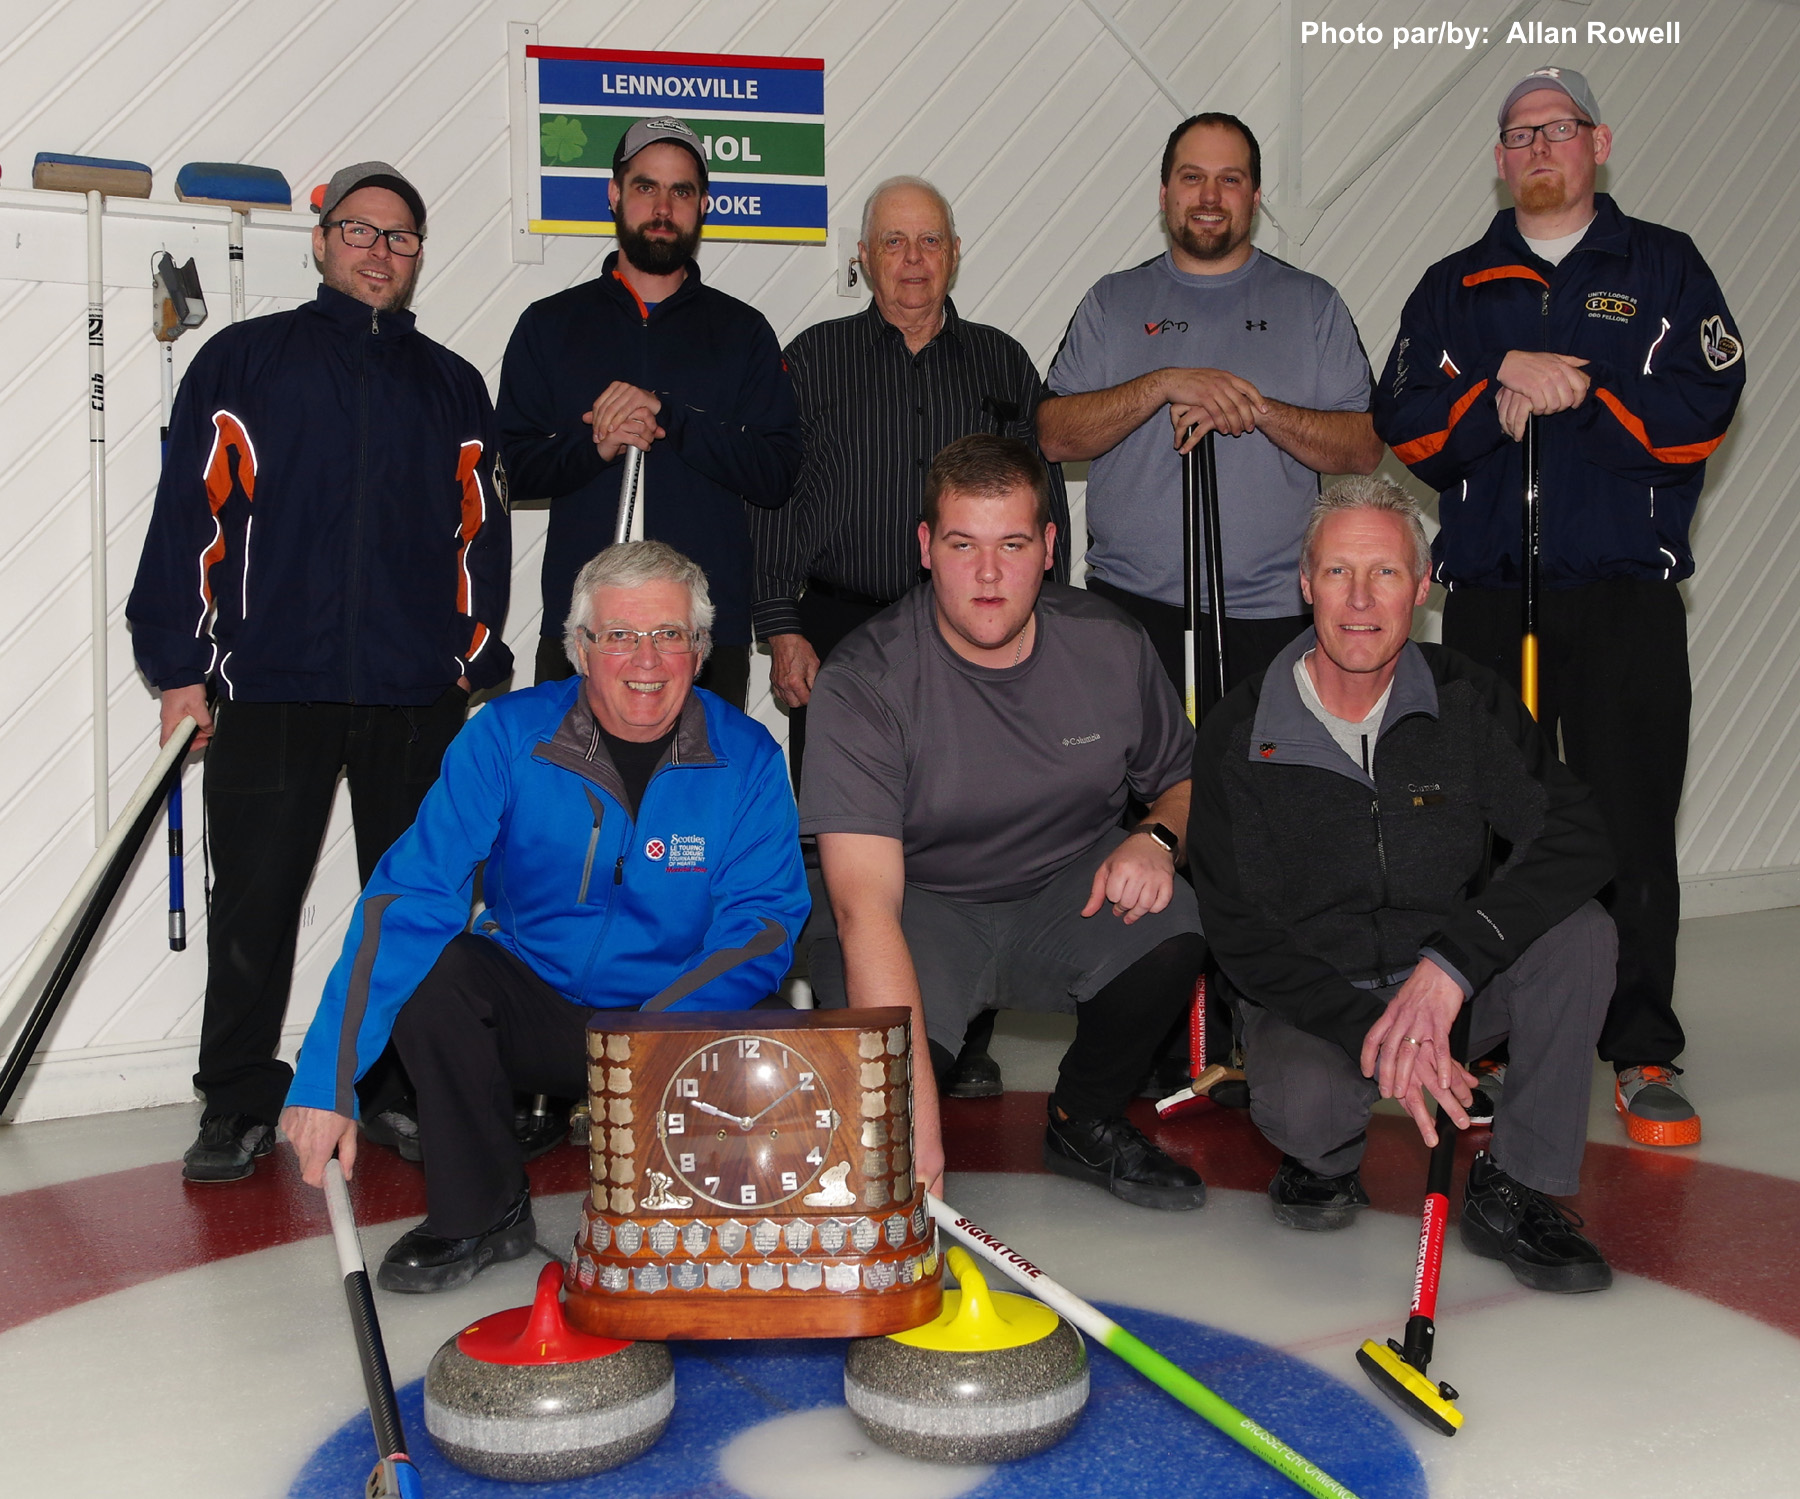 Lennoxville Mens A